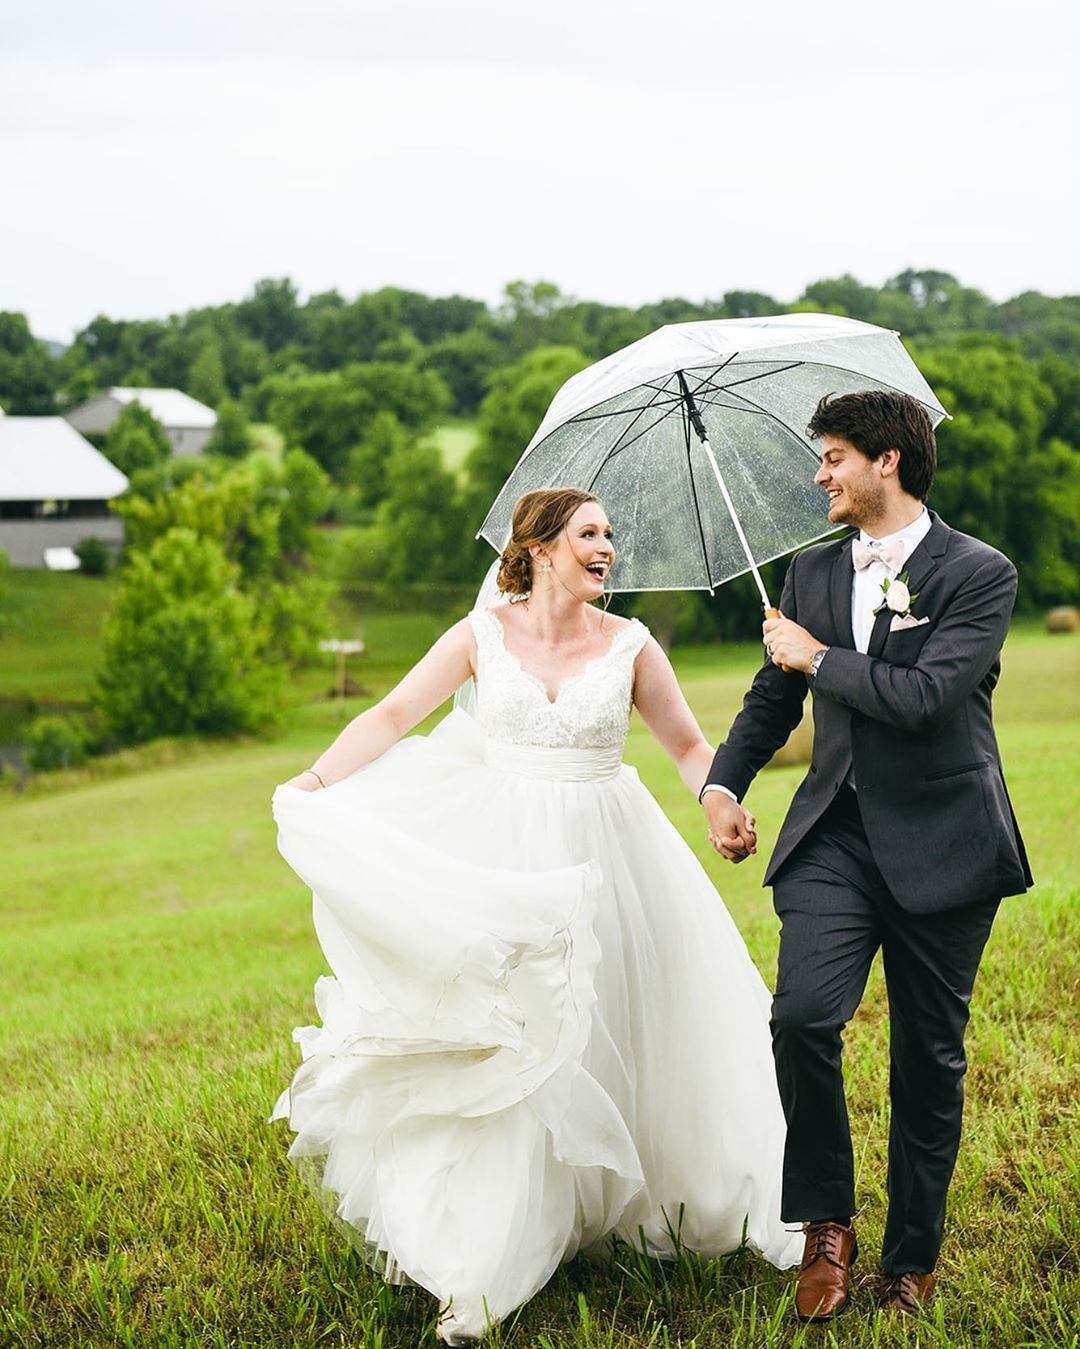 """""""Rain is a good thing"""" 🌧 ☔️ So much fun watching Cynthia & Josh love every single moment of their wedding day! This"""